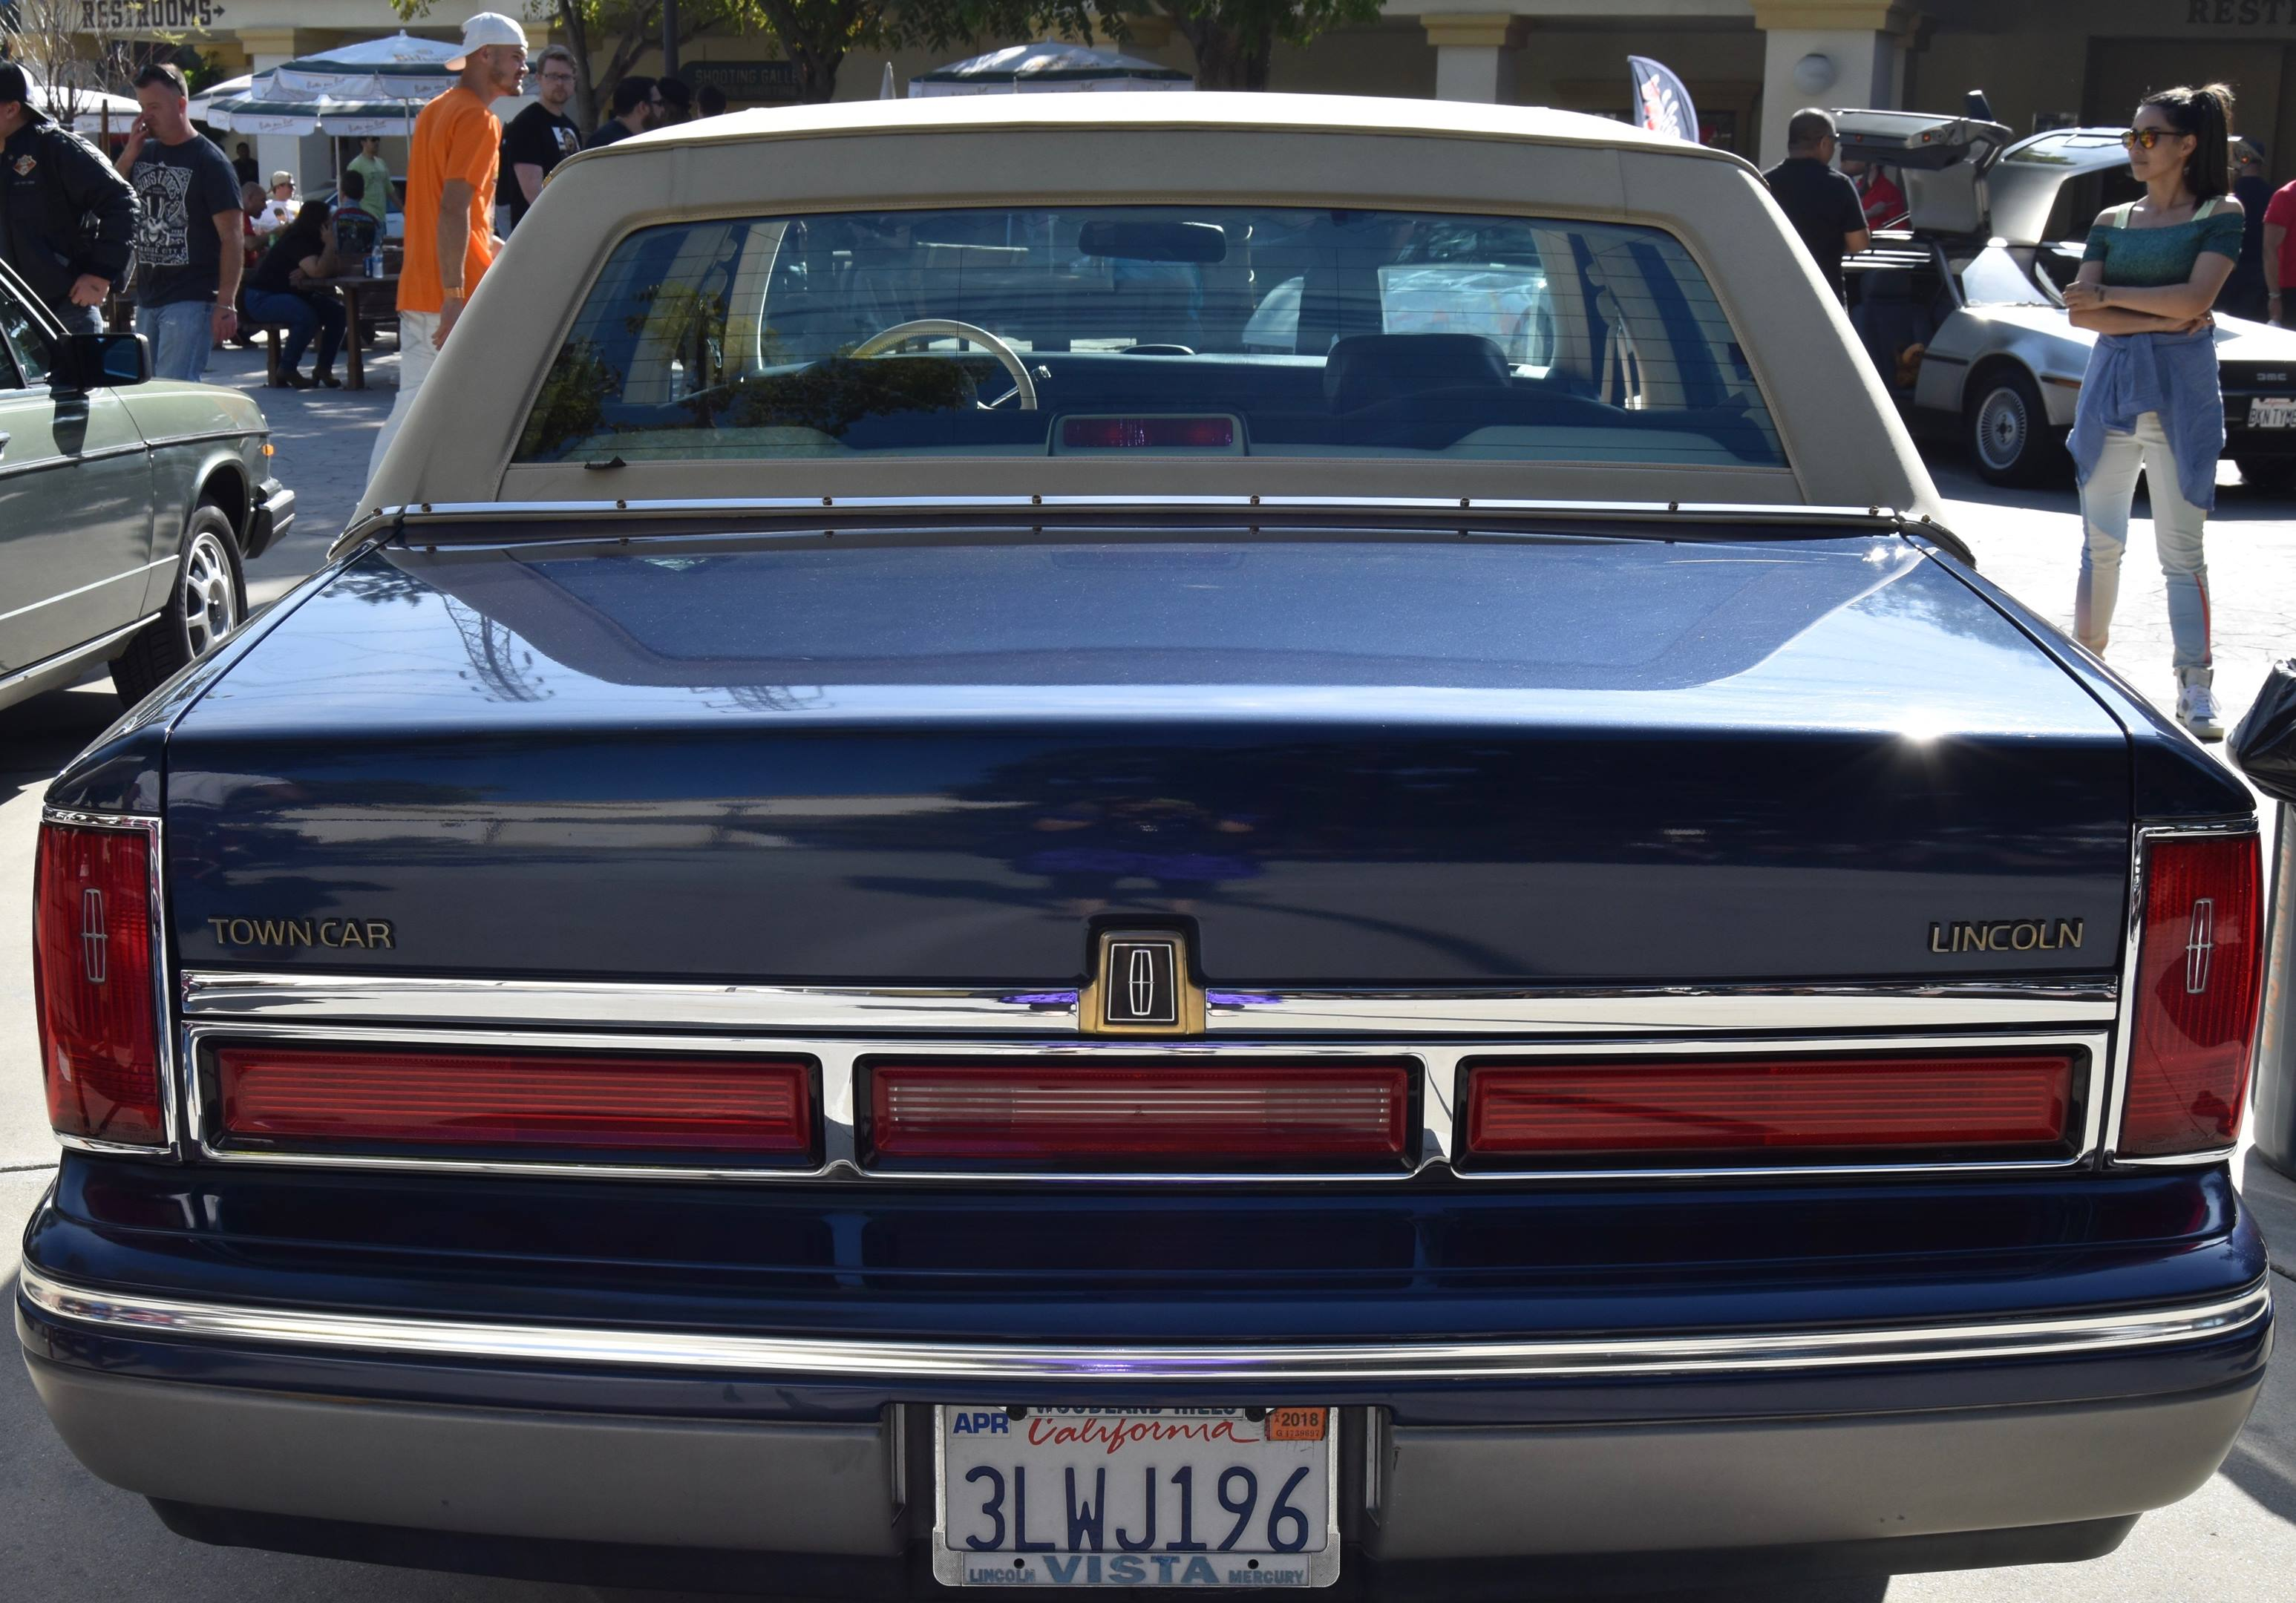 1995 Lincoln Town Car Signature Spinnaker Edition rear